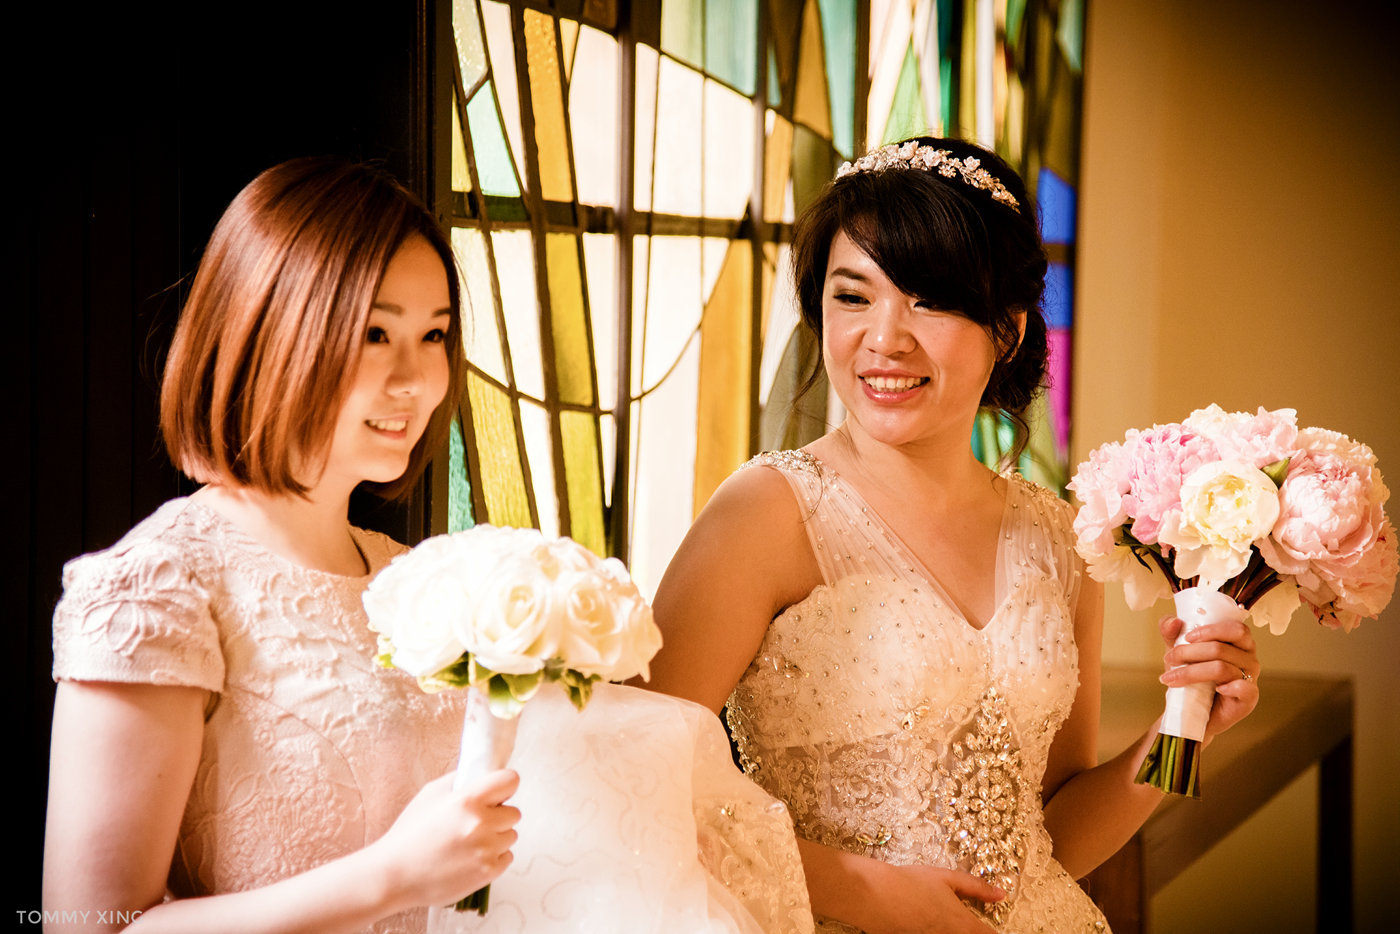 Qinglu Meng & Daozheng Chen Wedding Slideshow-85-E.JPG